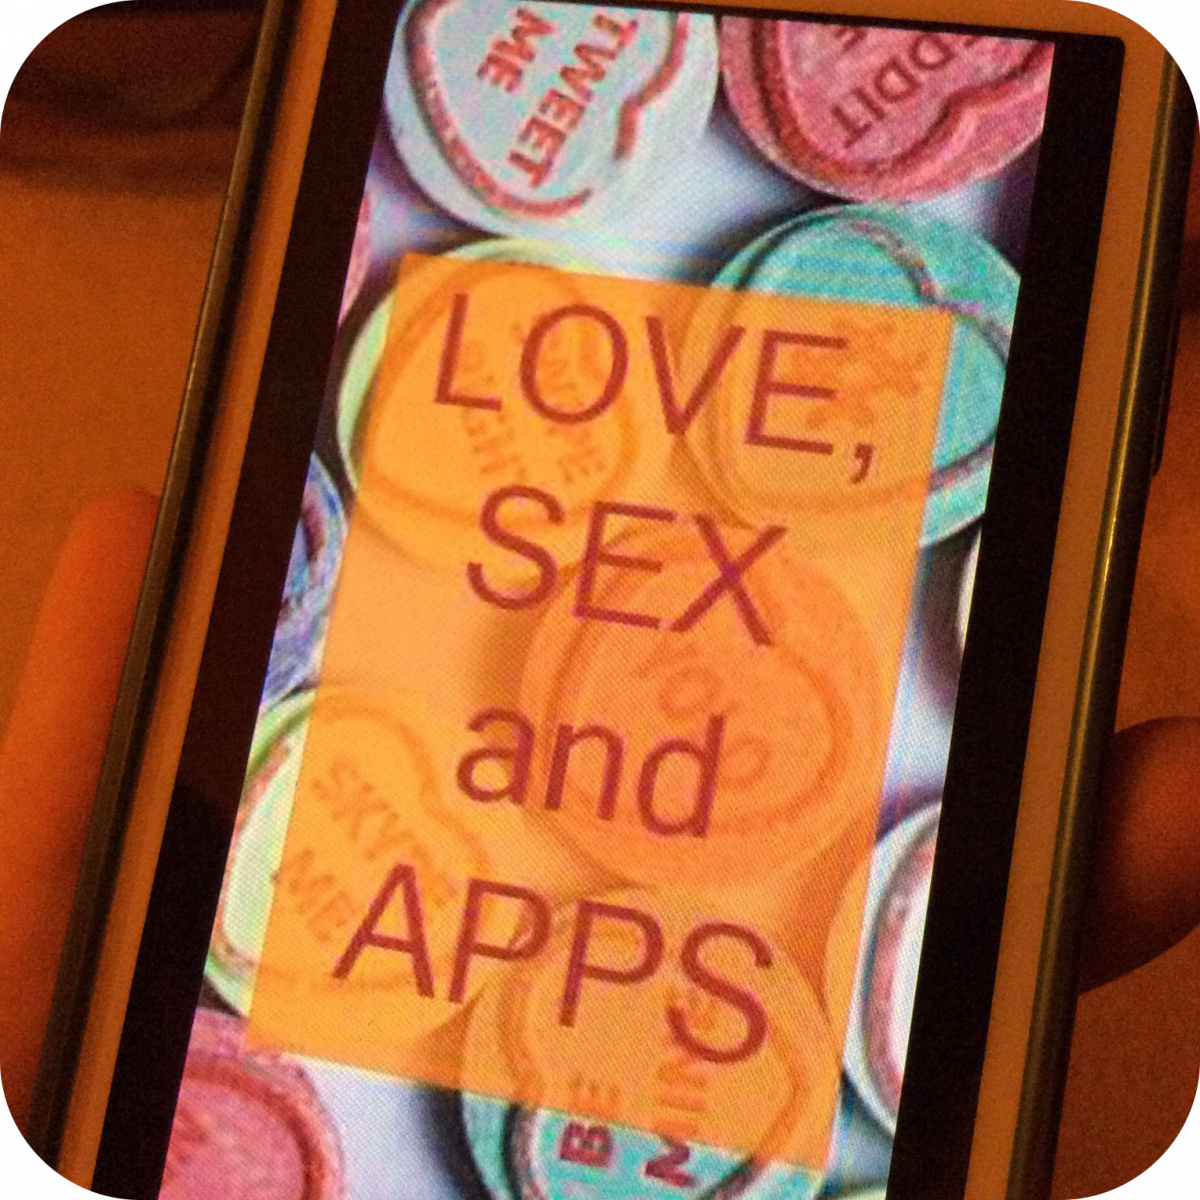 Love, Sex and Apps: Border Control and The Tinder Game